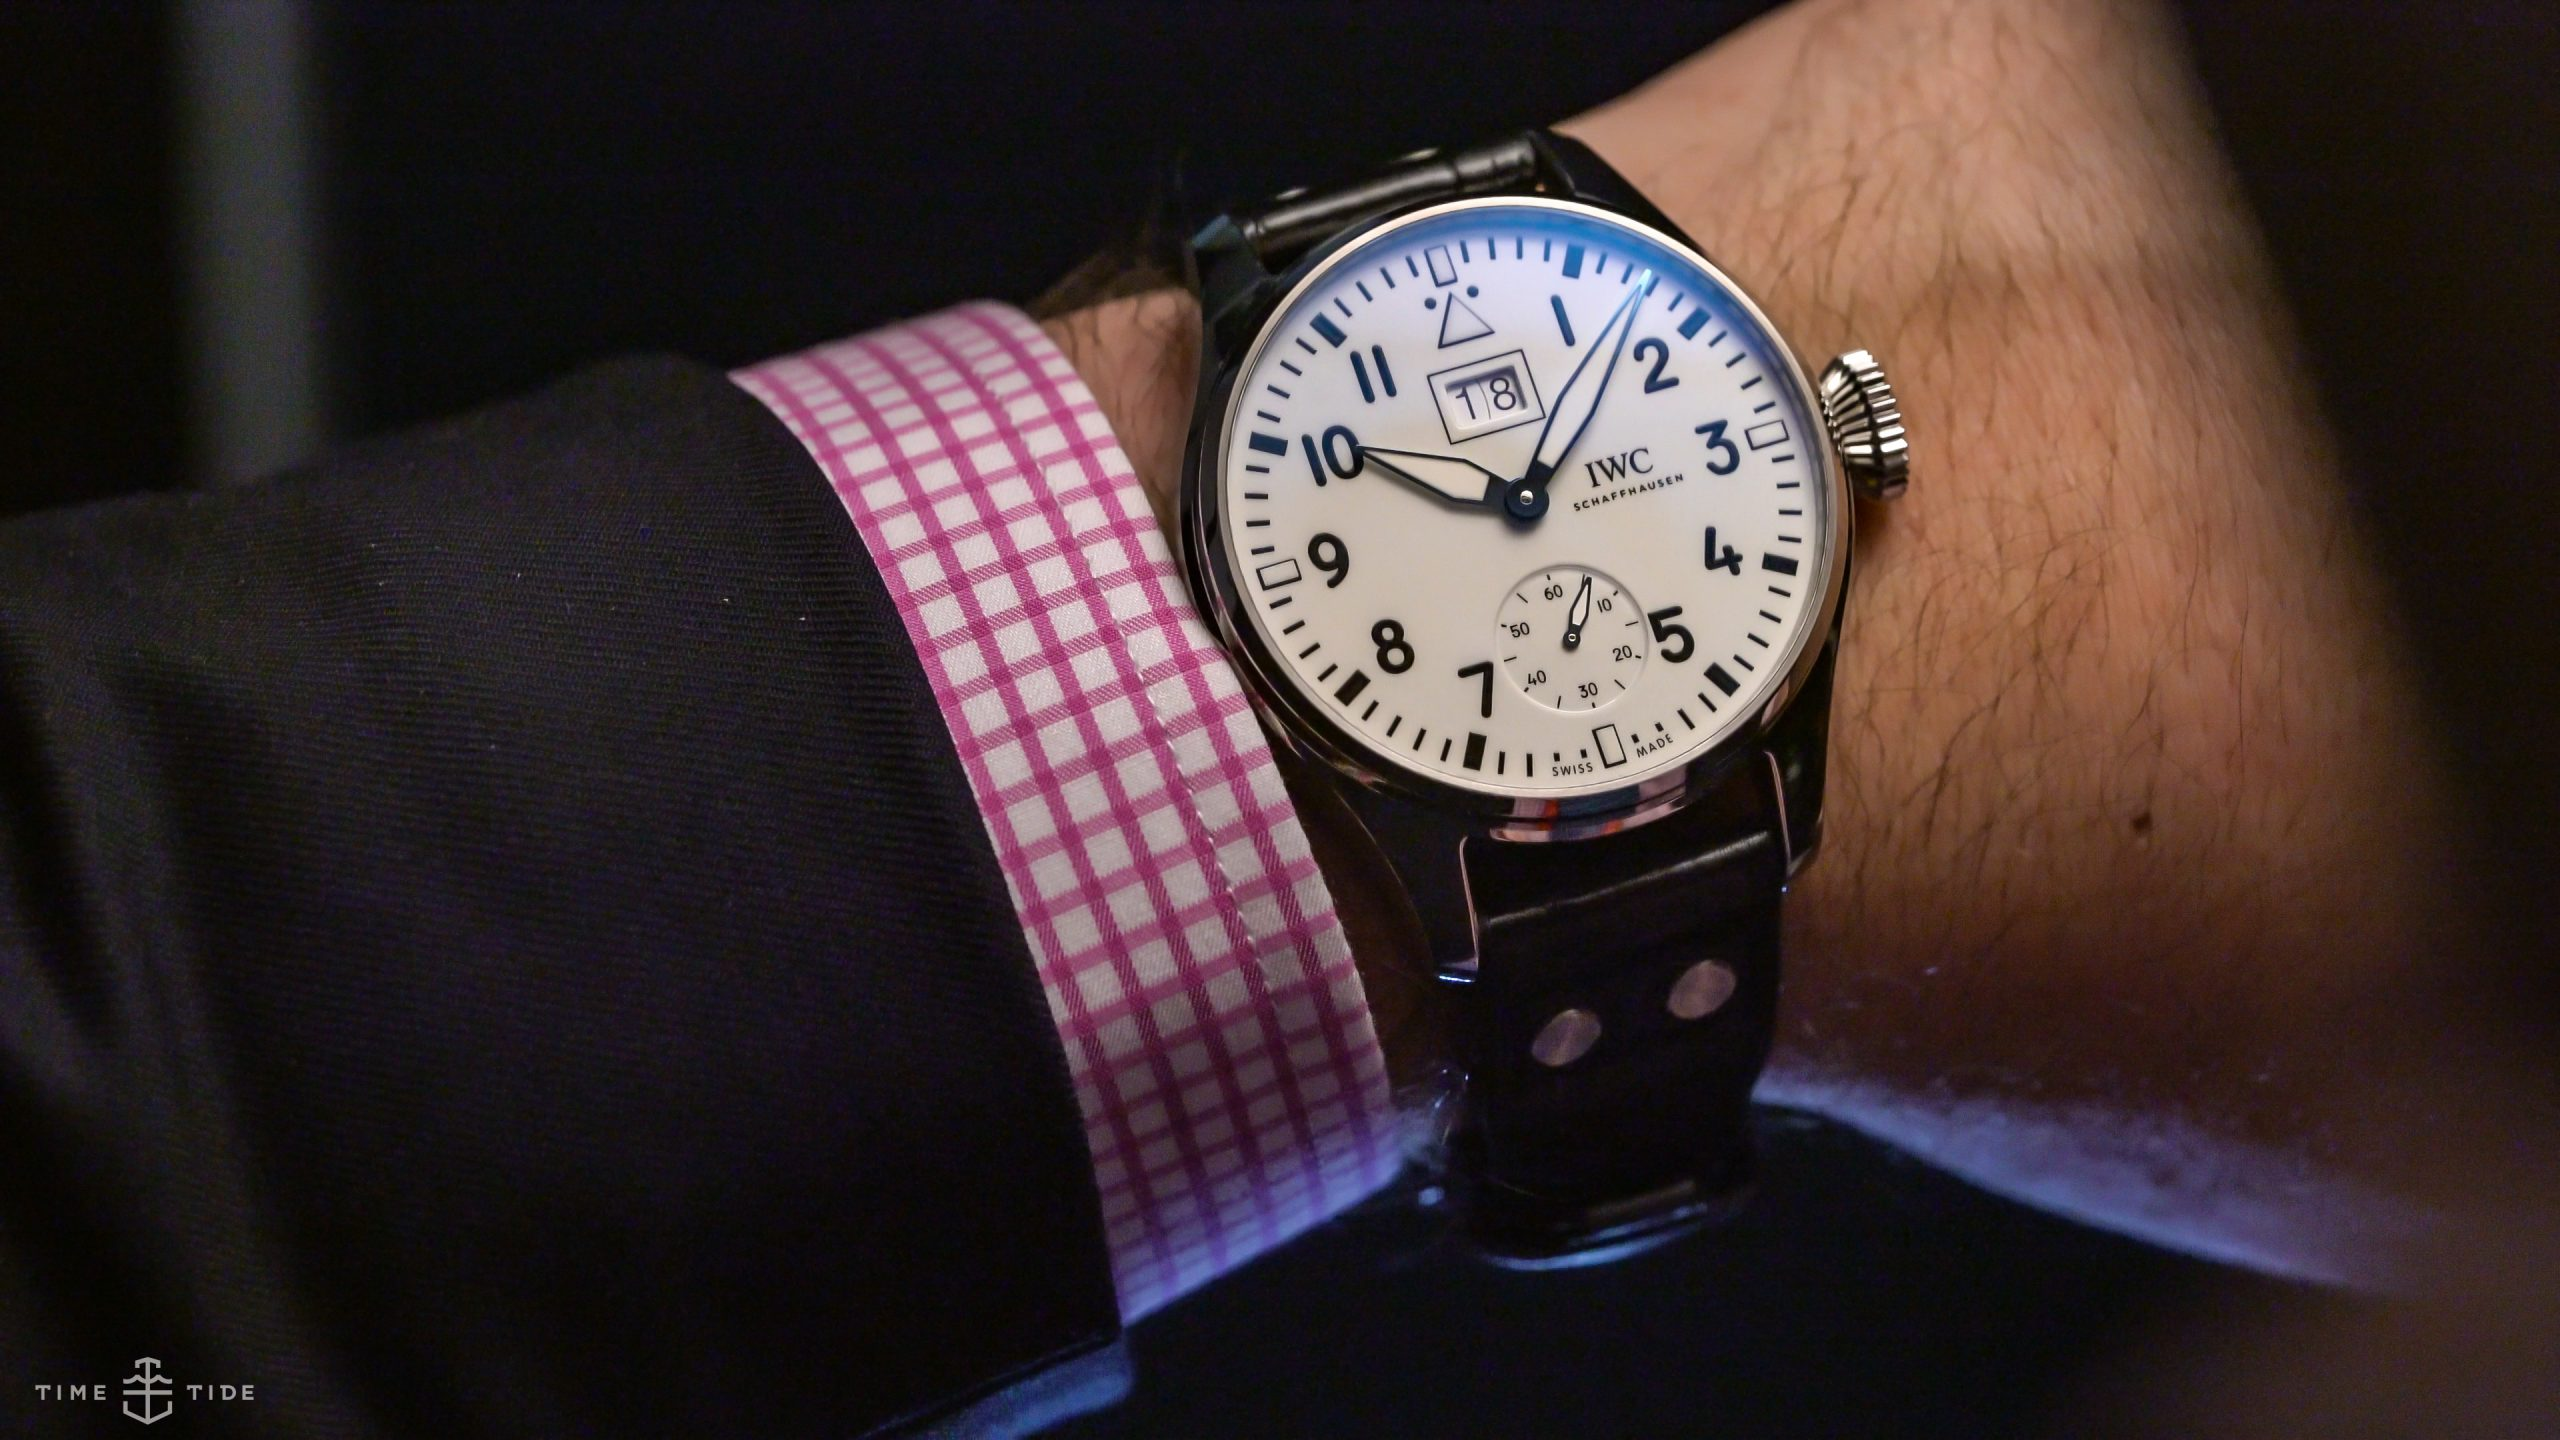 VIDEO: 6 standout watches from IWC's 2018 collection – from Pilot's to Pallweber